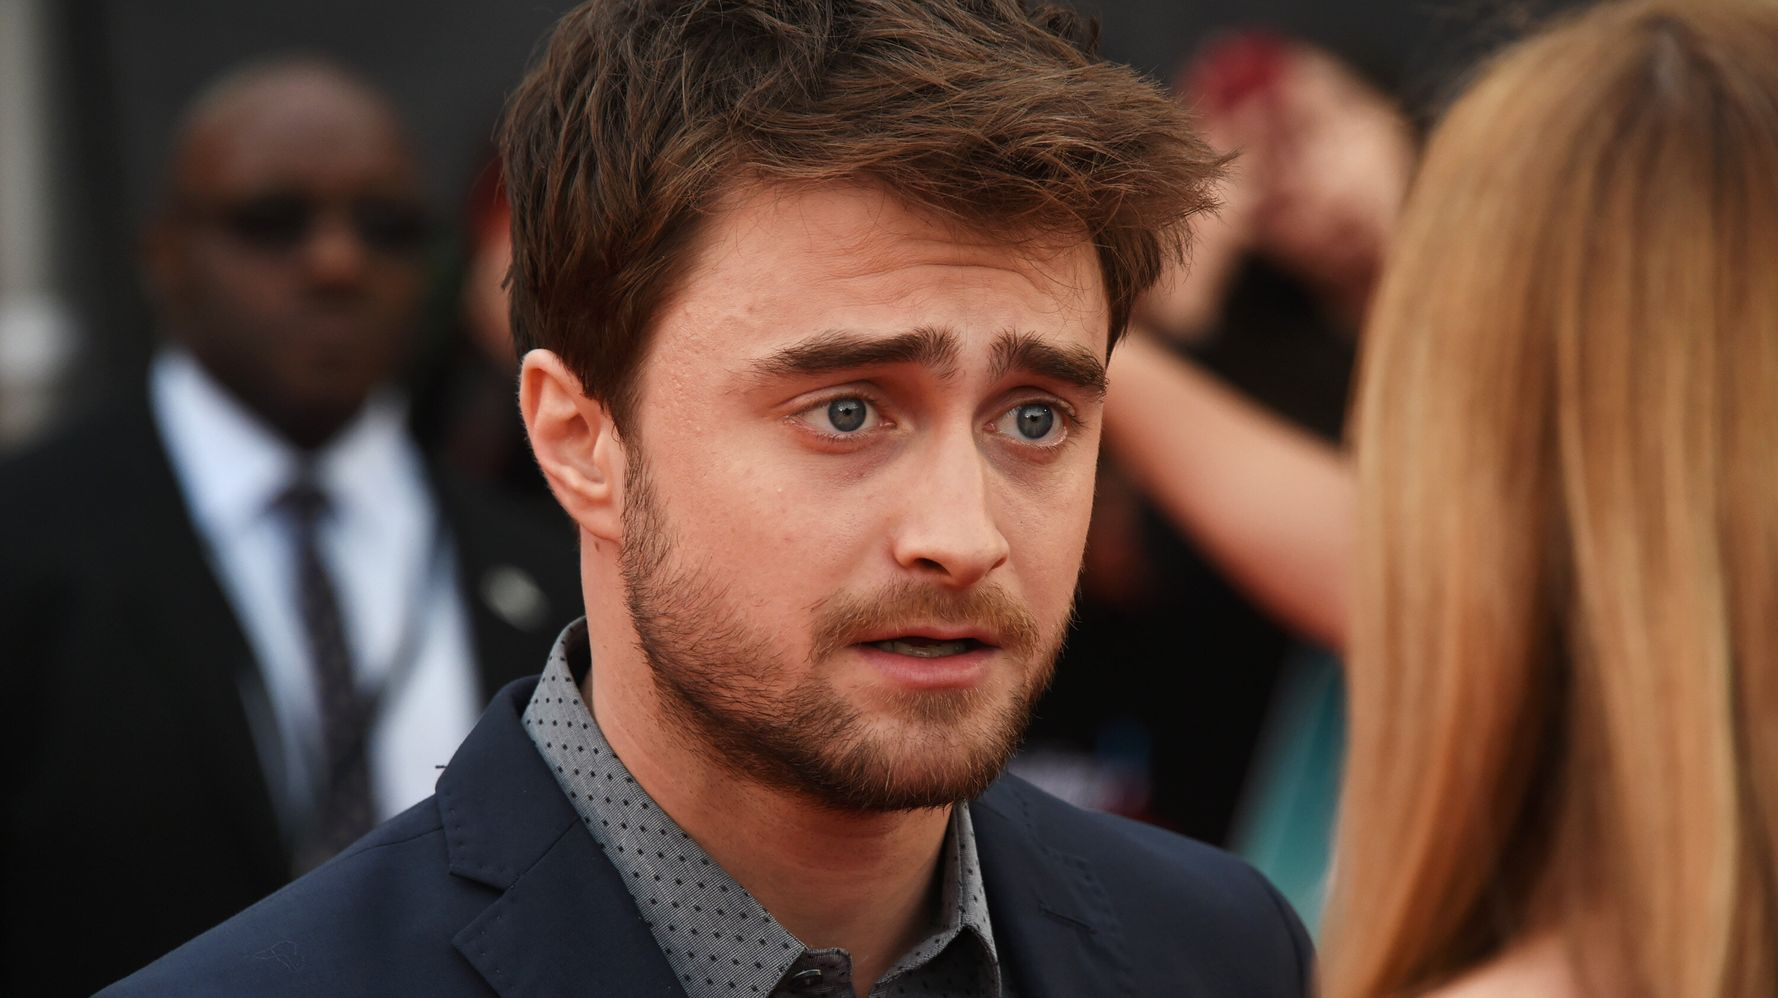 Daniel Radcliffe: 'My Entire Life And Career Is Built On Luck And Privilege'